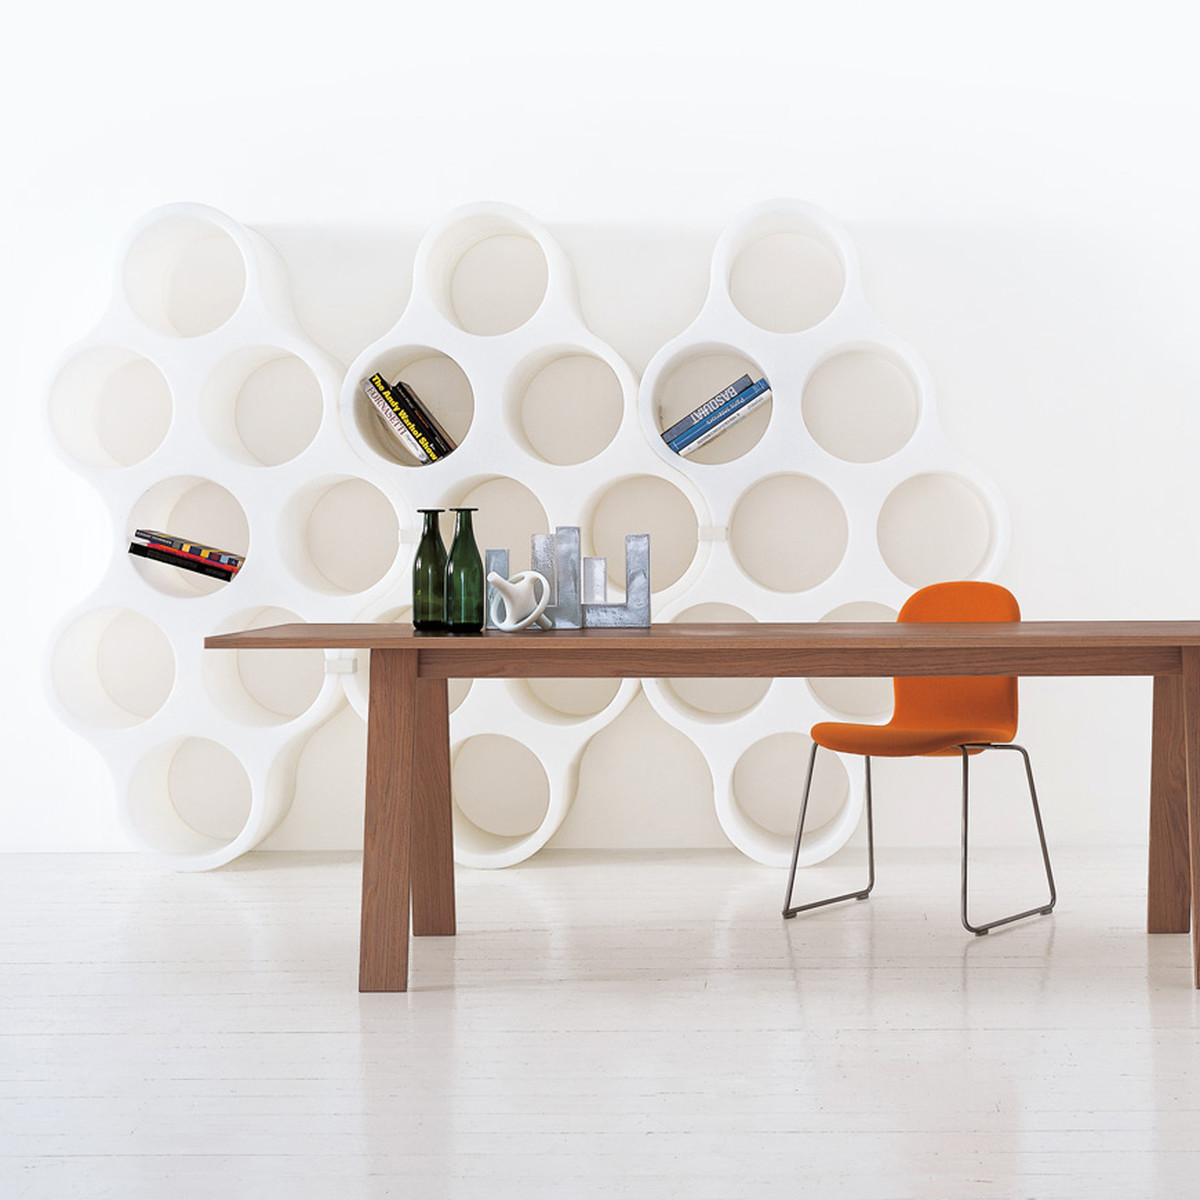 a wood table with an orange chair and a curved bookshelf